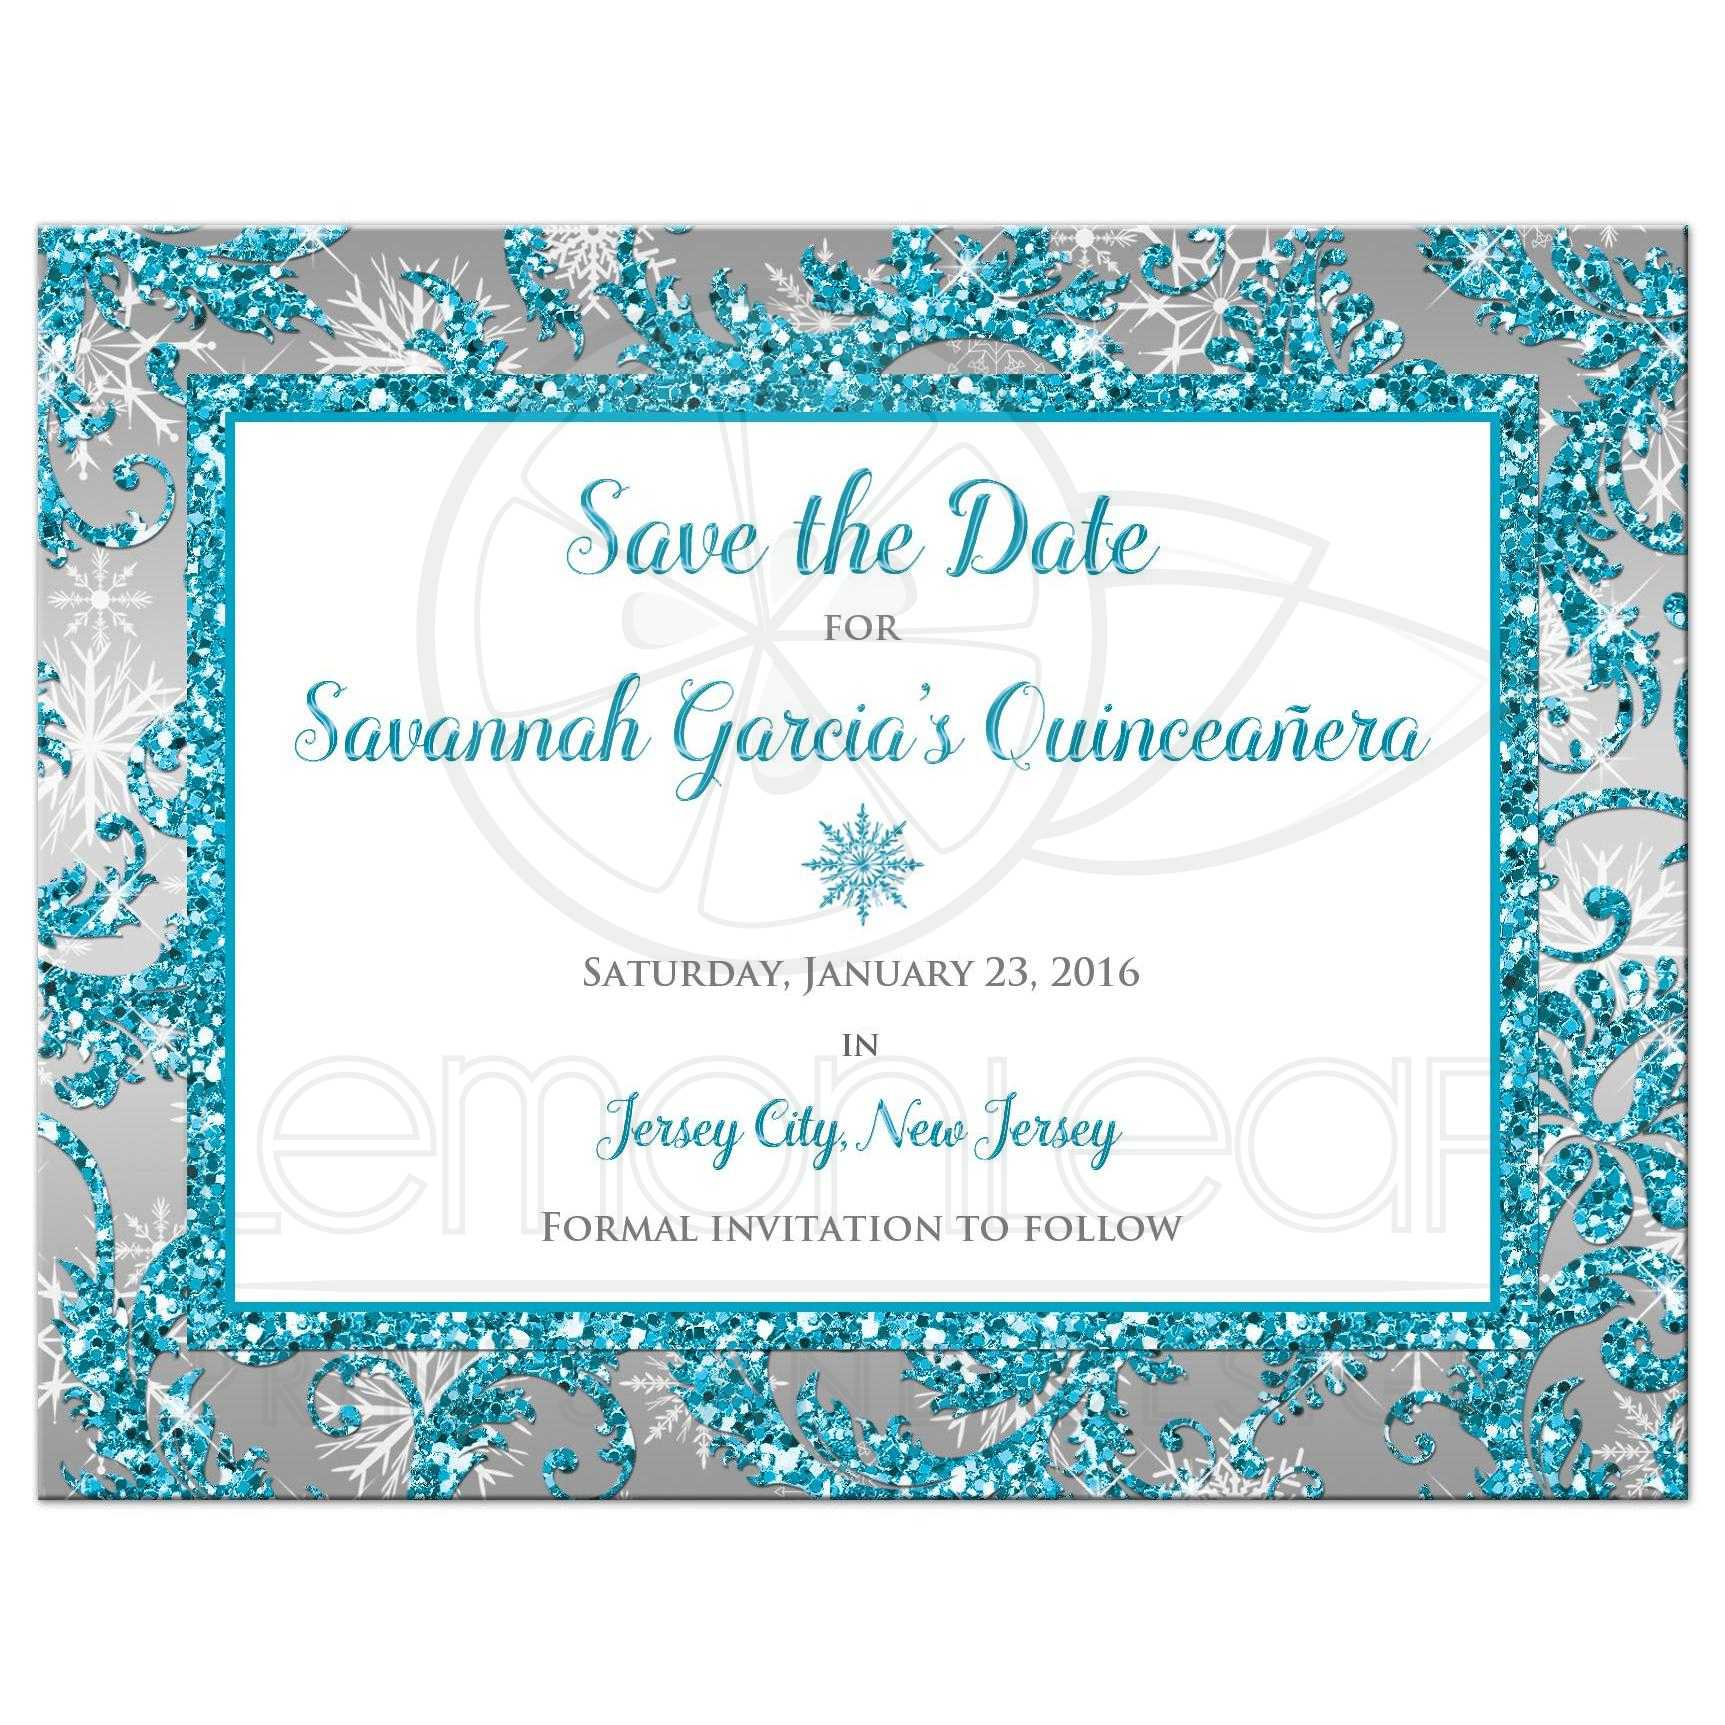 Quinceañera Save the Date Card | Winter Wonderland Turquoise ...